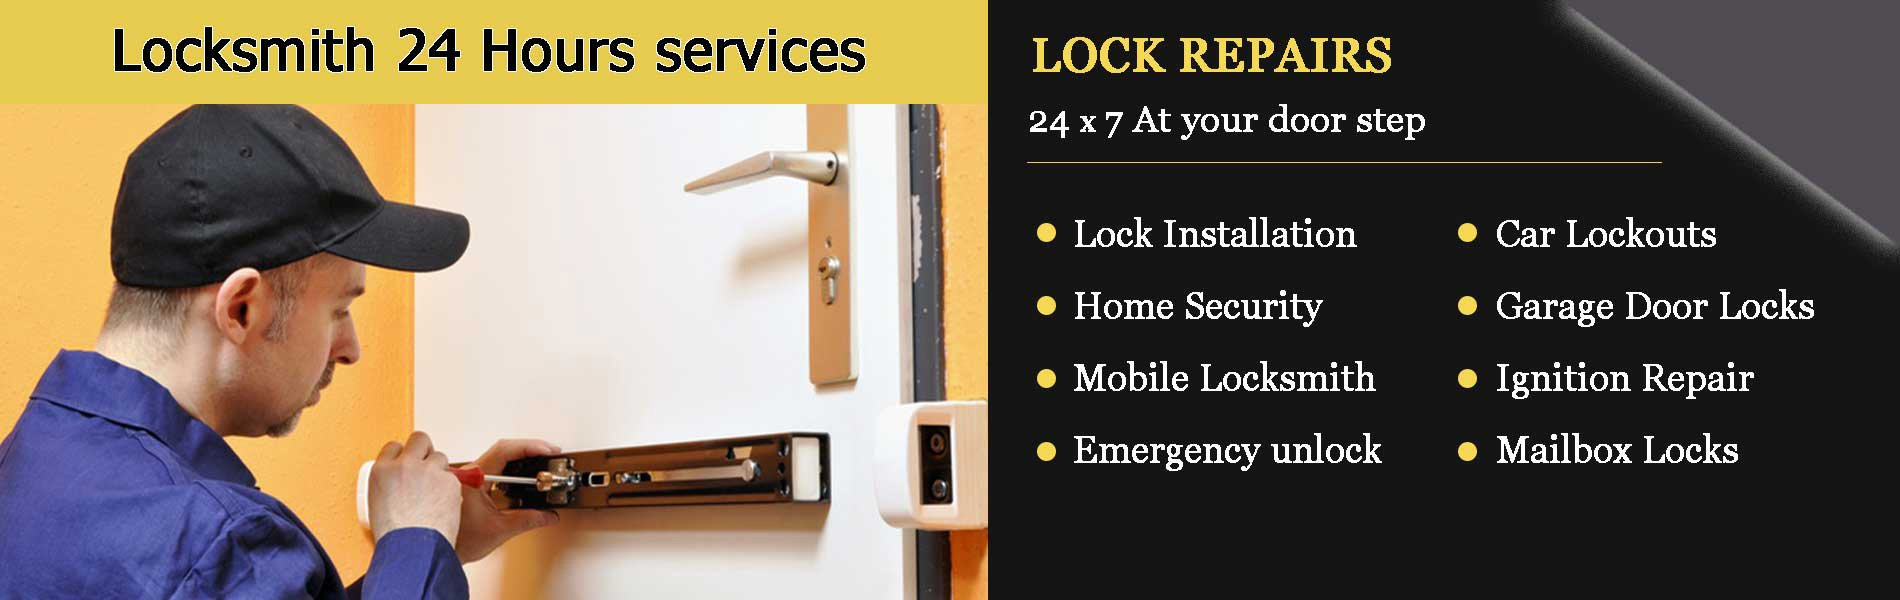 City Locksmith Store Suitland, MD 301-723-7100